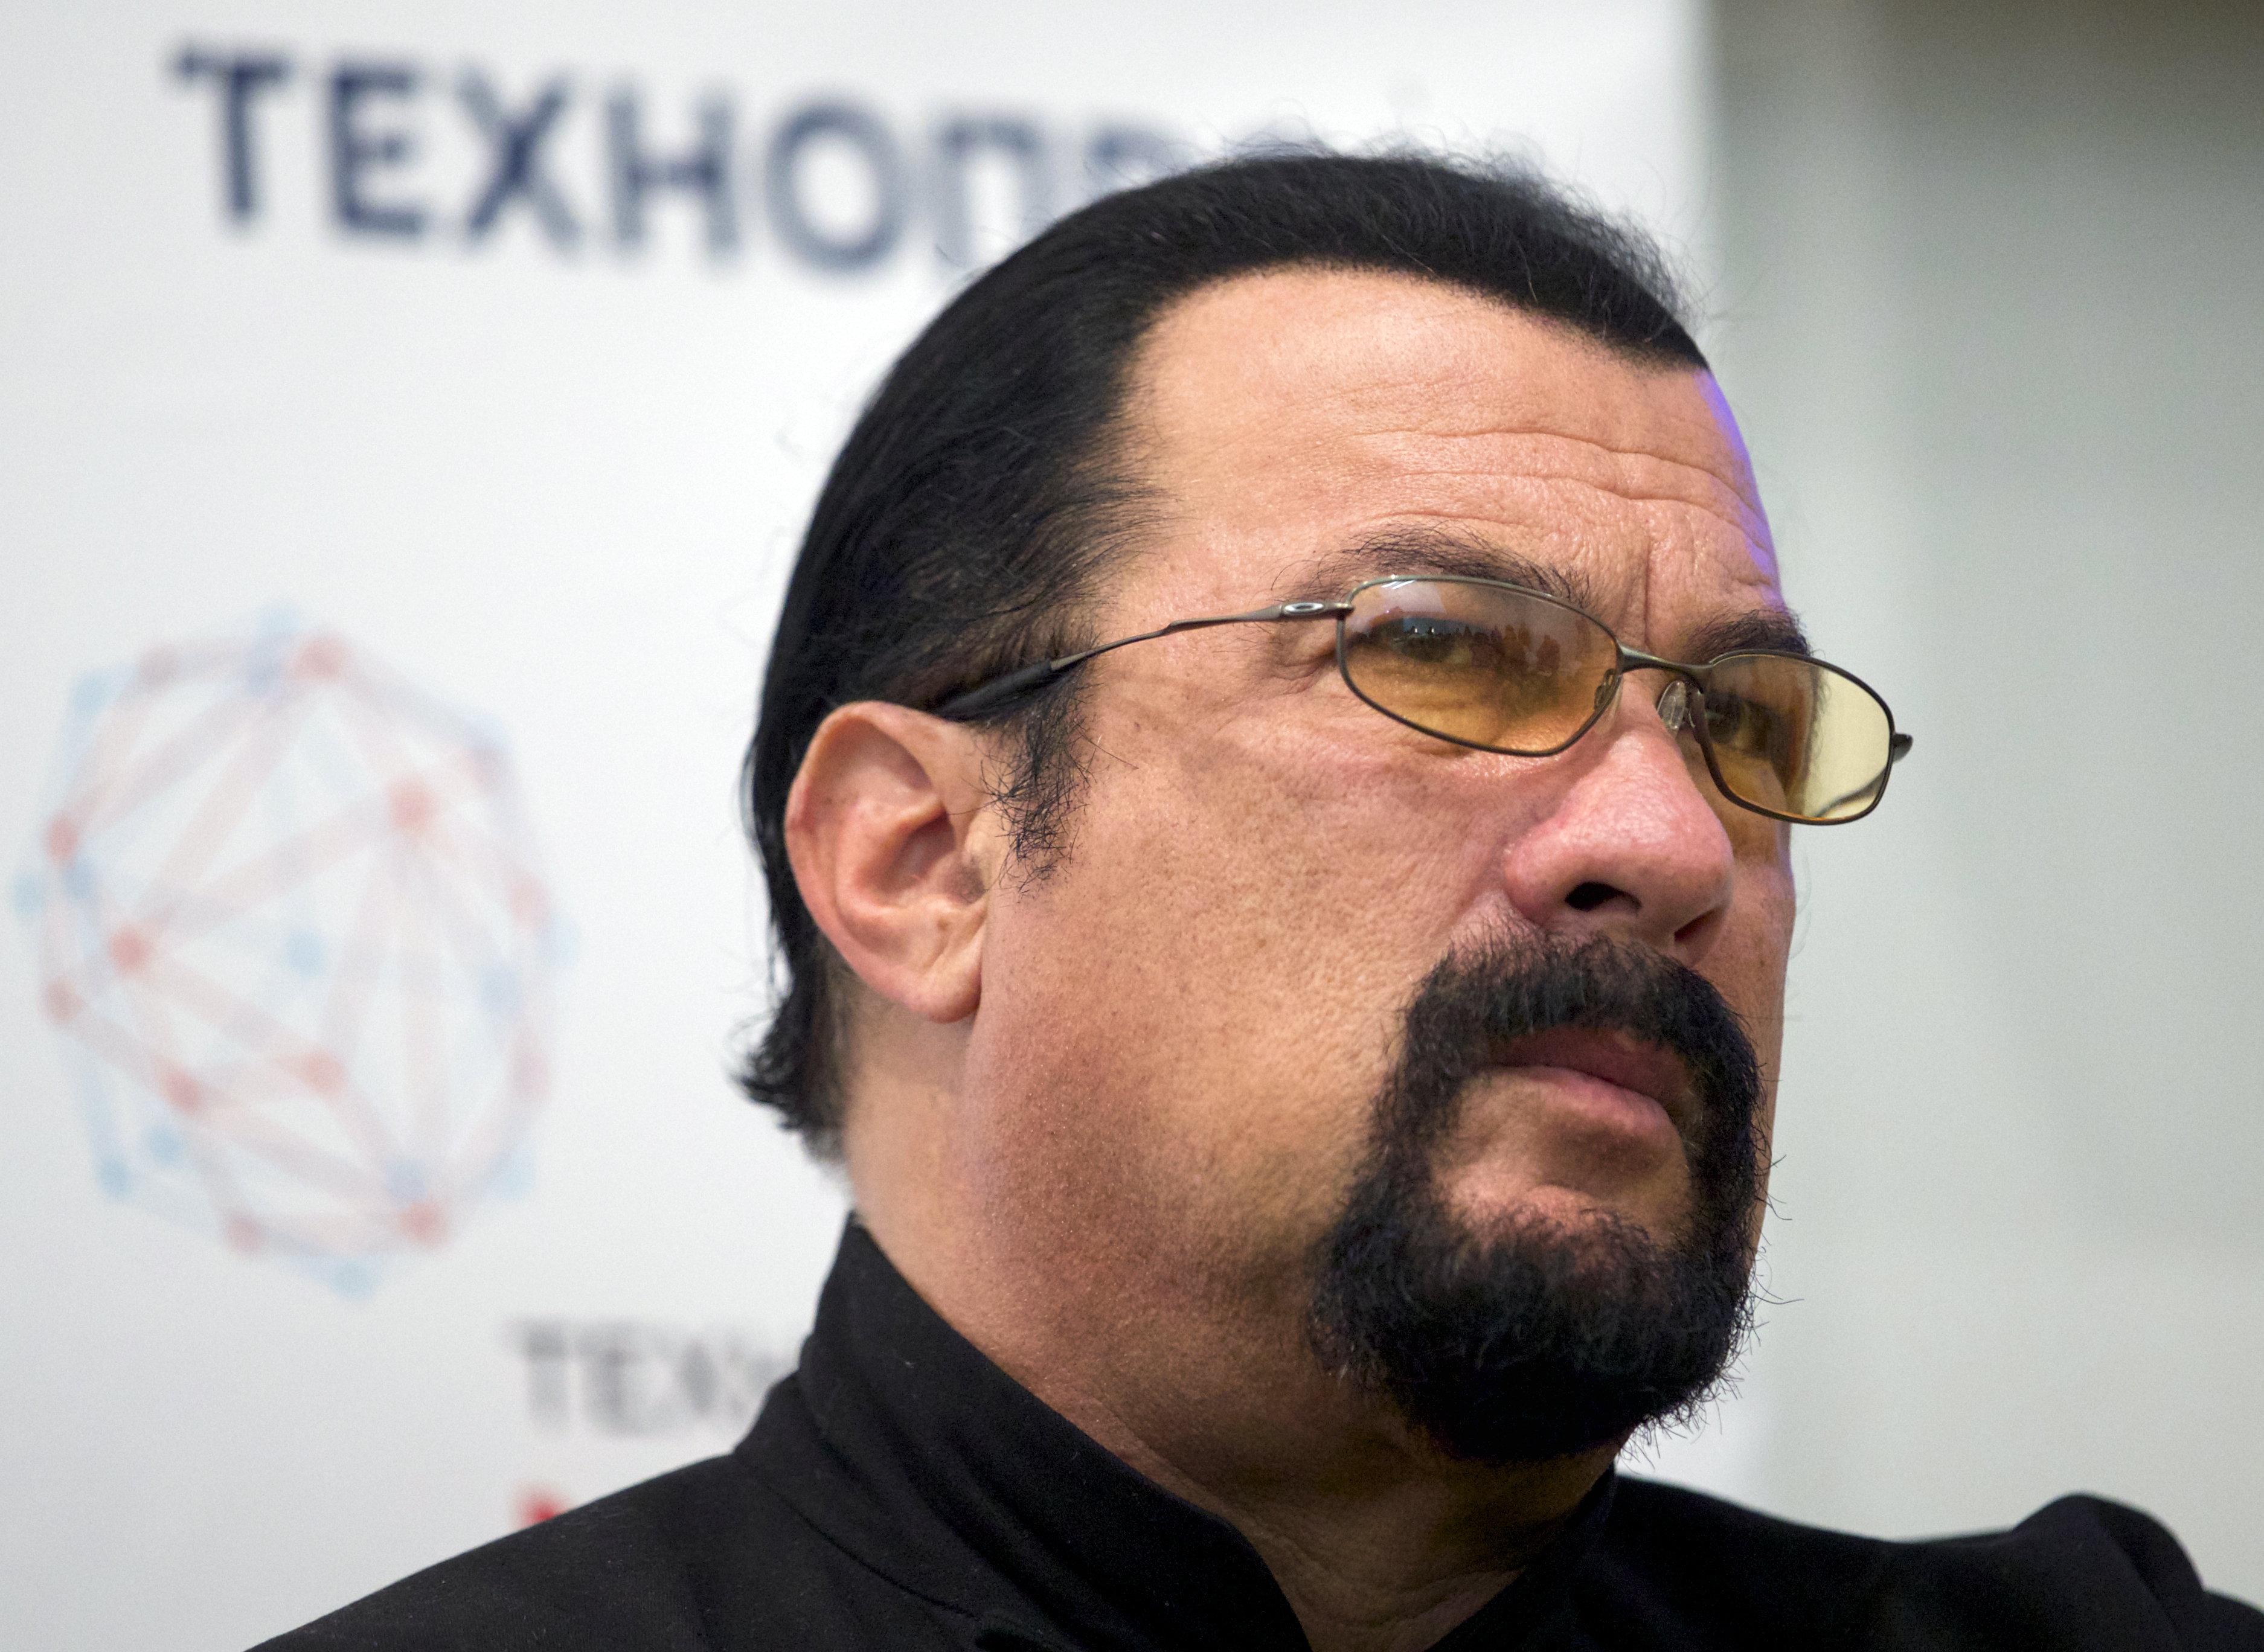 FILE - In this Sept. 22, 2015, file photo, actor Steven Seagal speaks at a news conference, while attending an opening ceremony for a research and development center in Moscow, Russia.{&amp;nbsp;} (AP Photo/Ivan Sekretarev, File)<p></p>